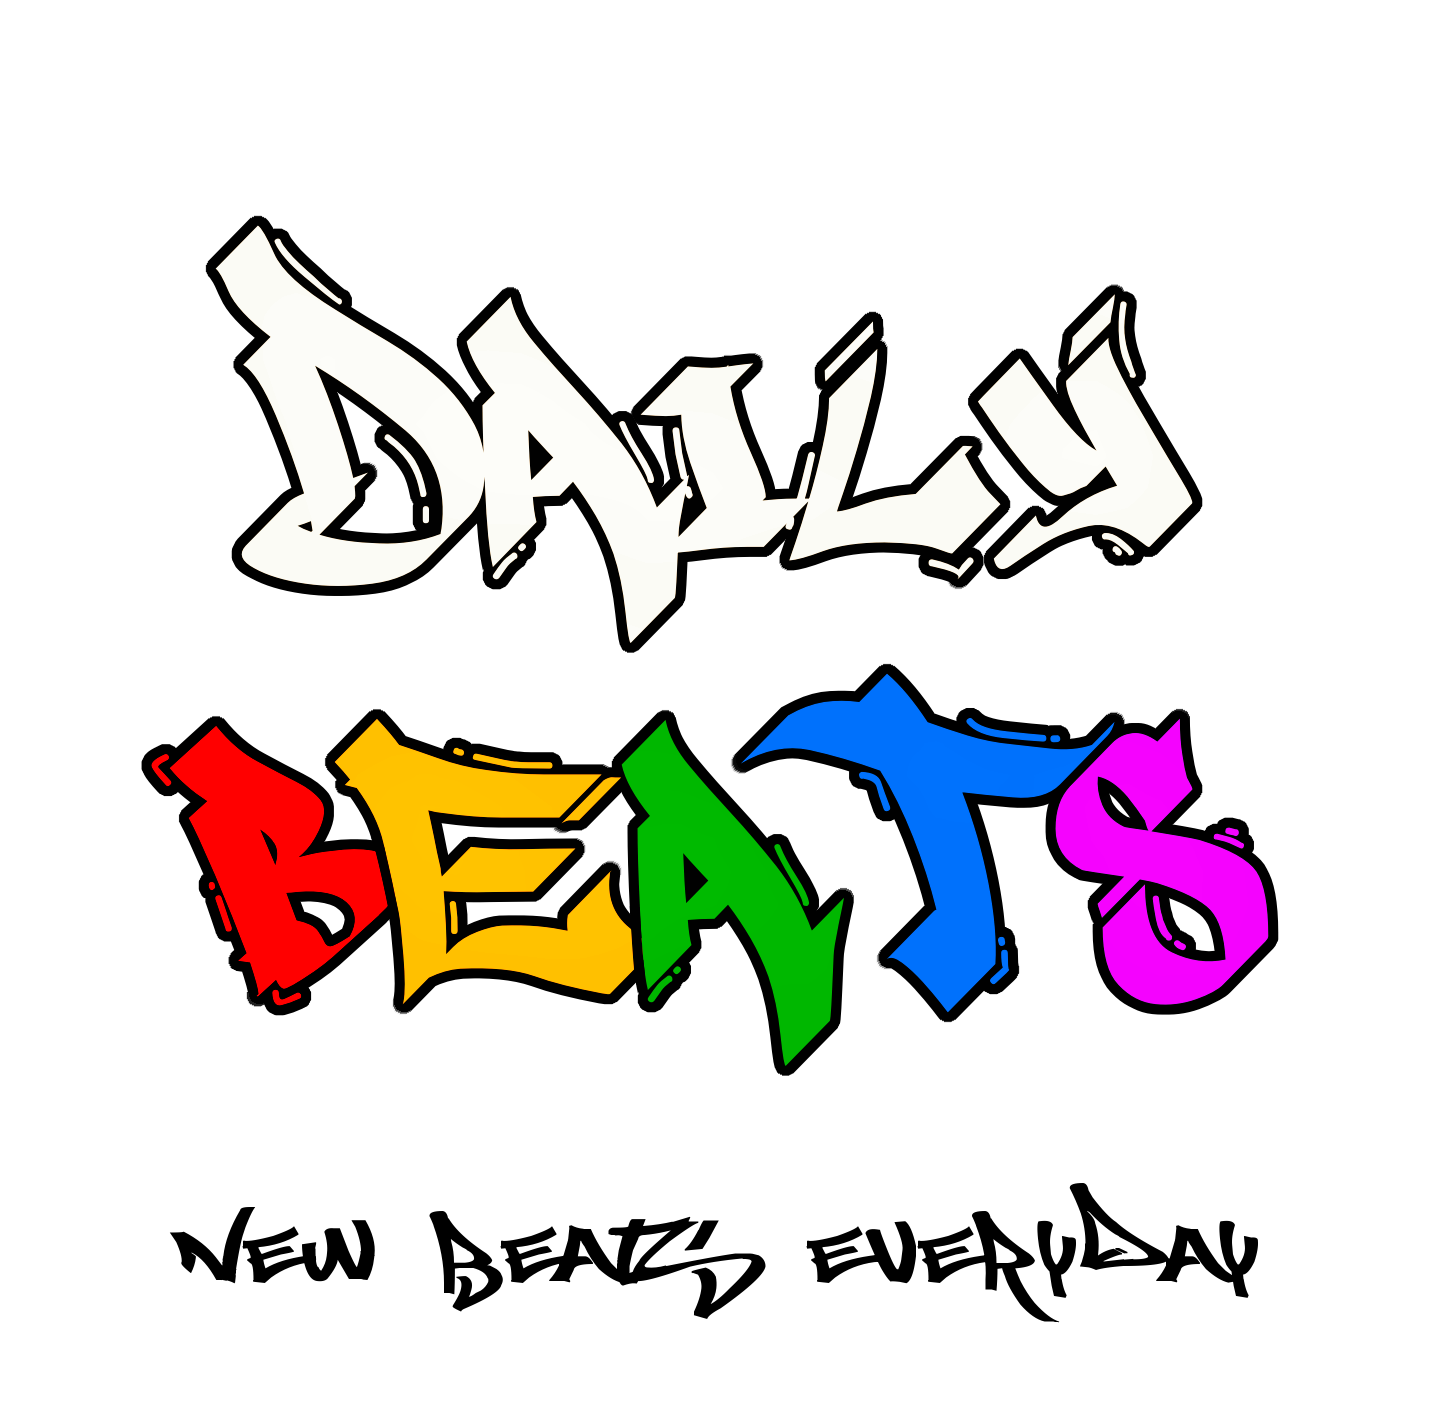 Daily Beats New Beats Logo